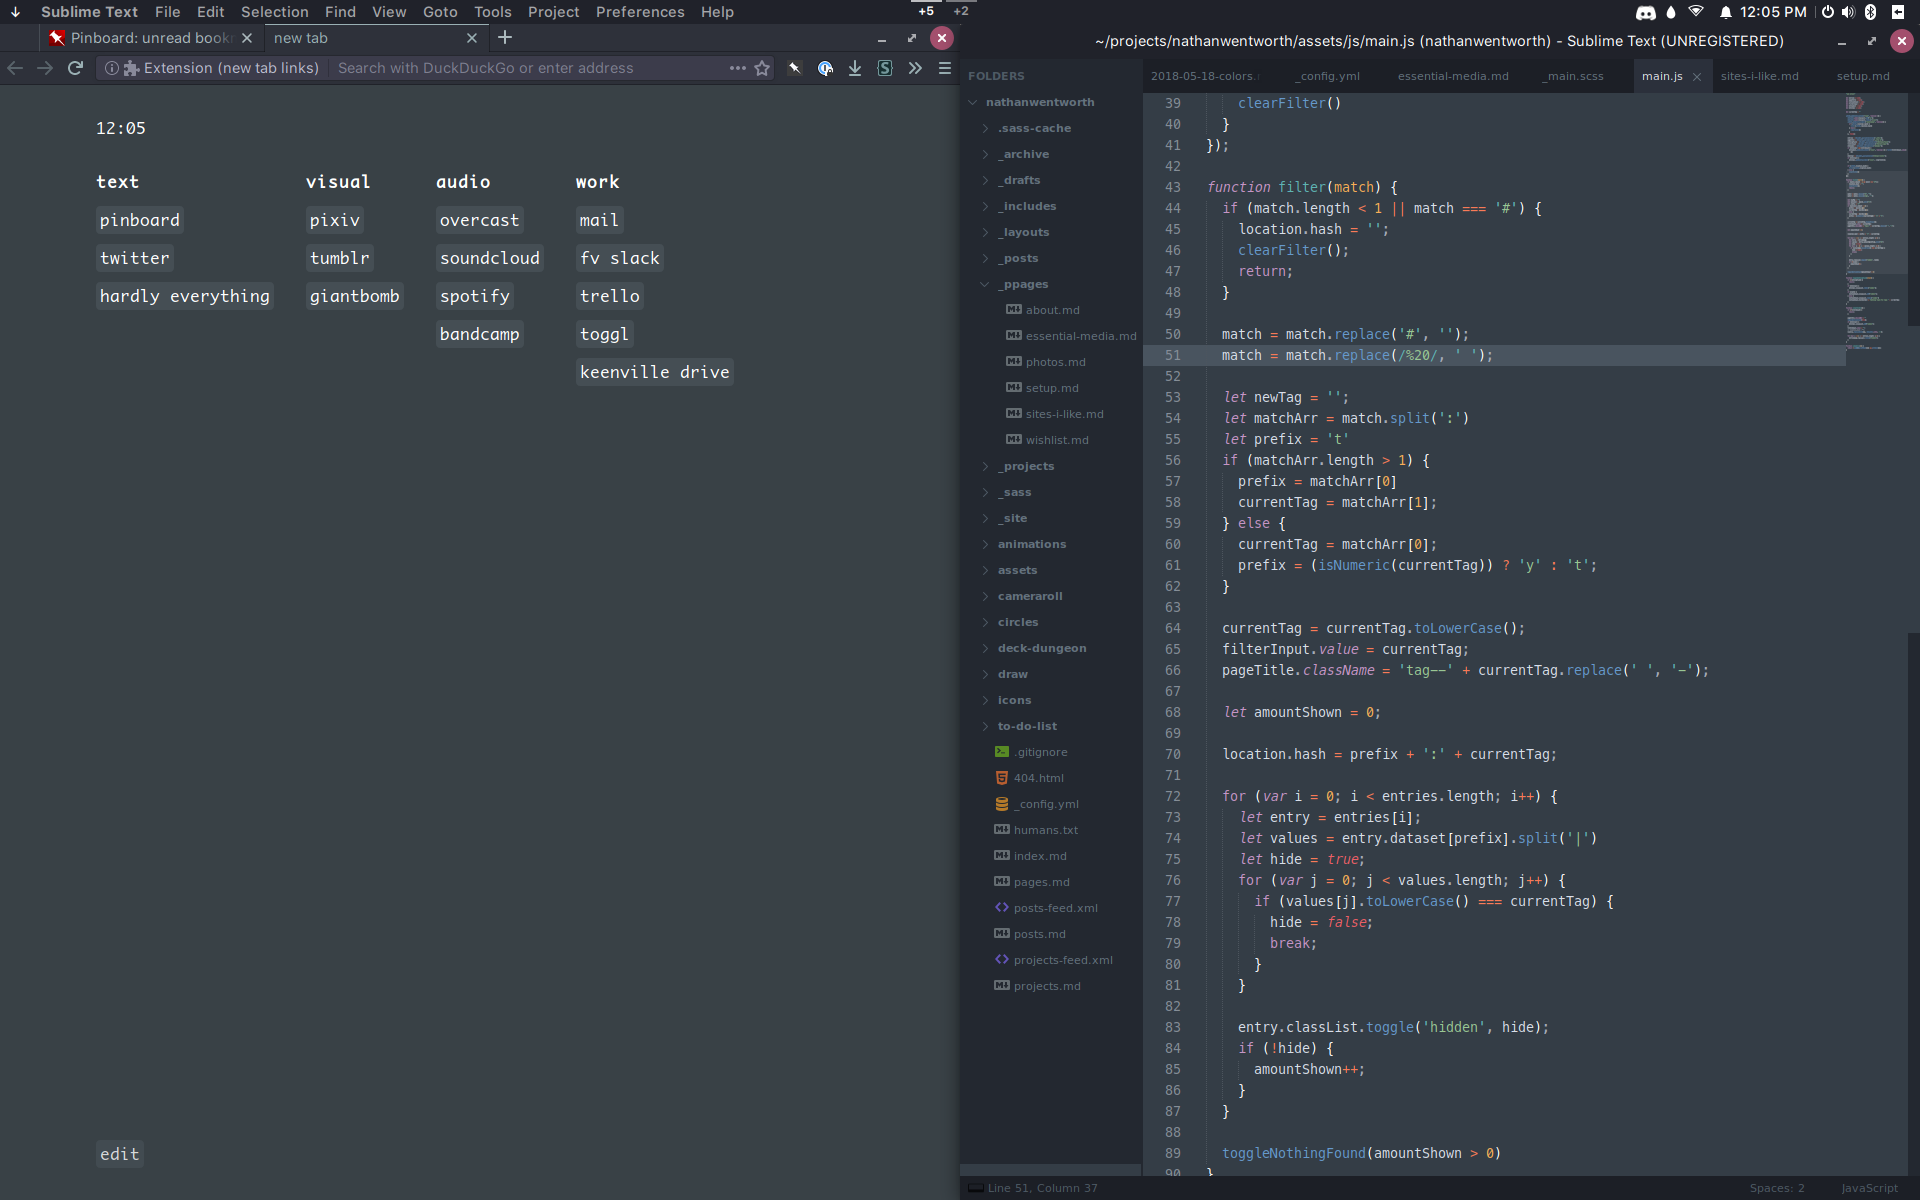 desktop screenshot with firefox and sublime text